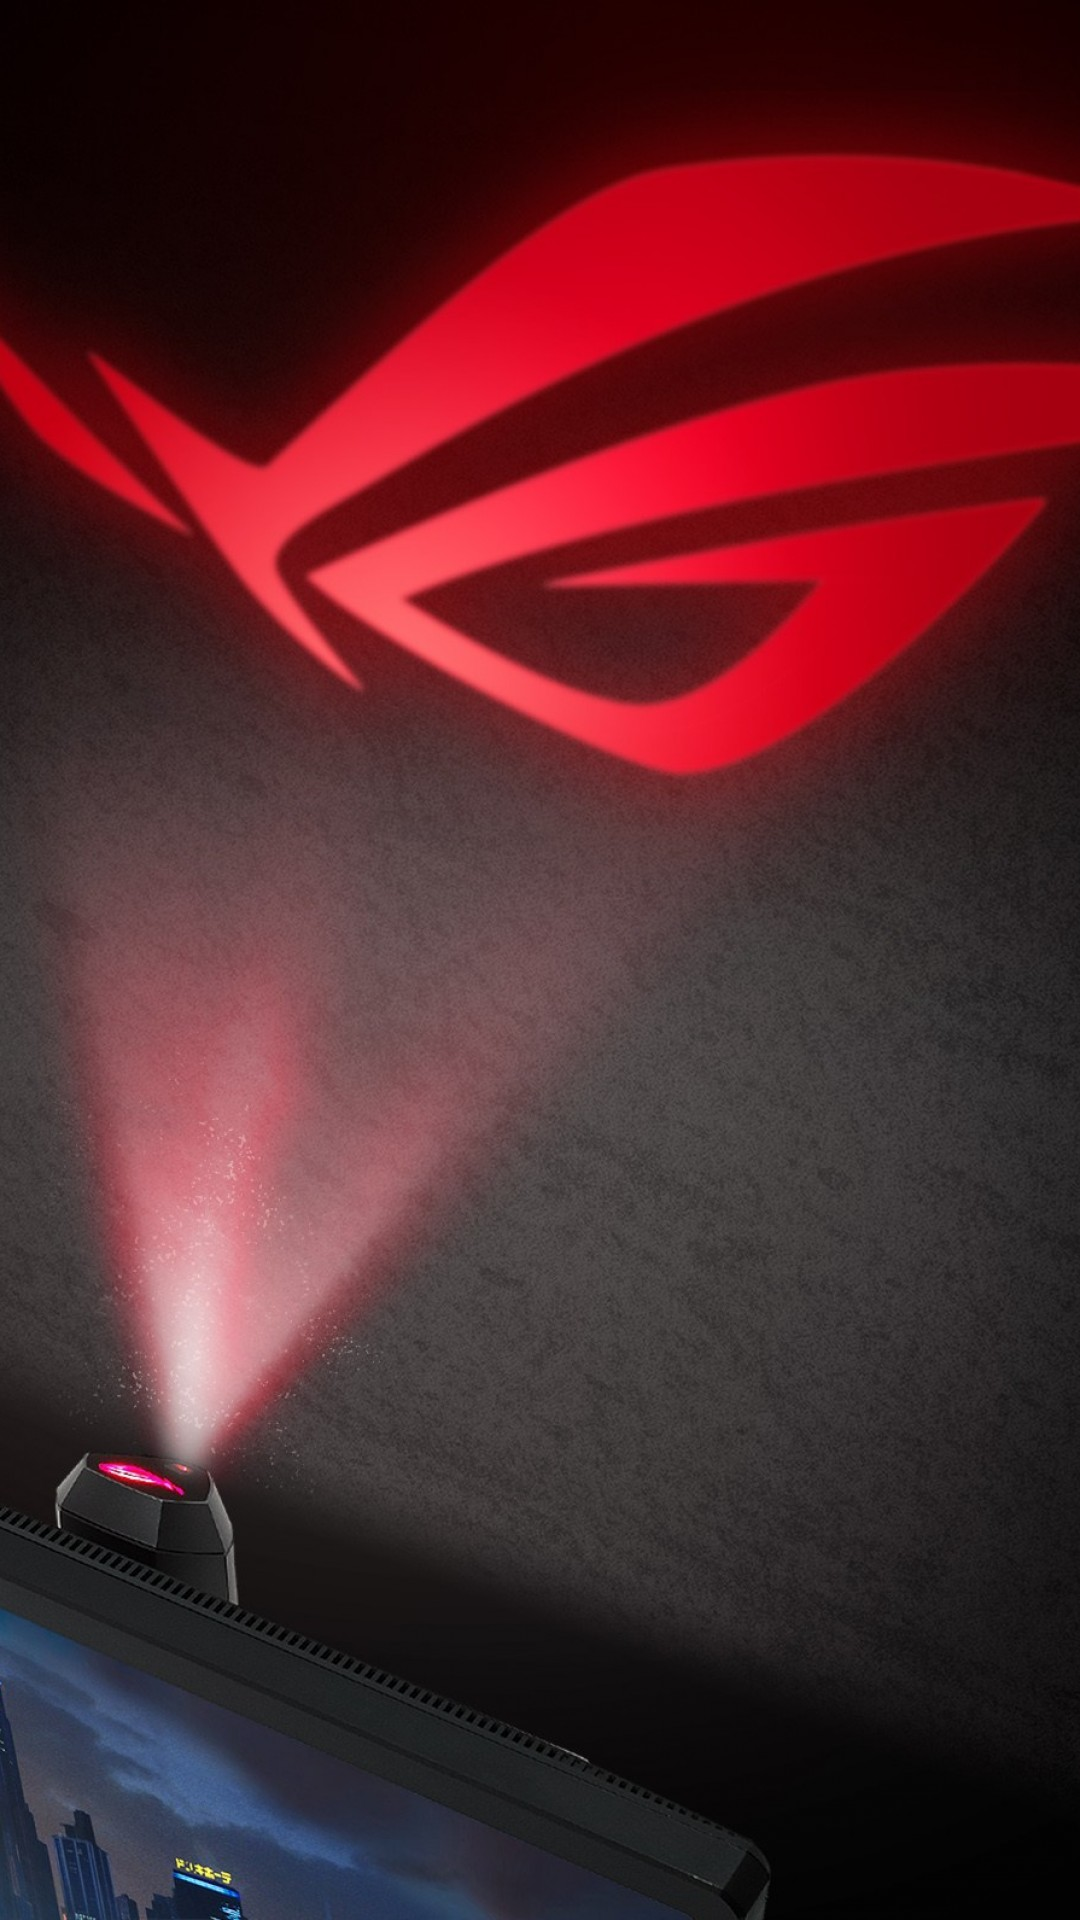 Wallpaper Asus Rog Light Signal  Ces 2019  Hi